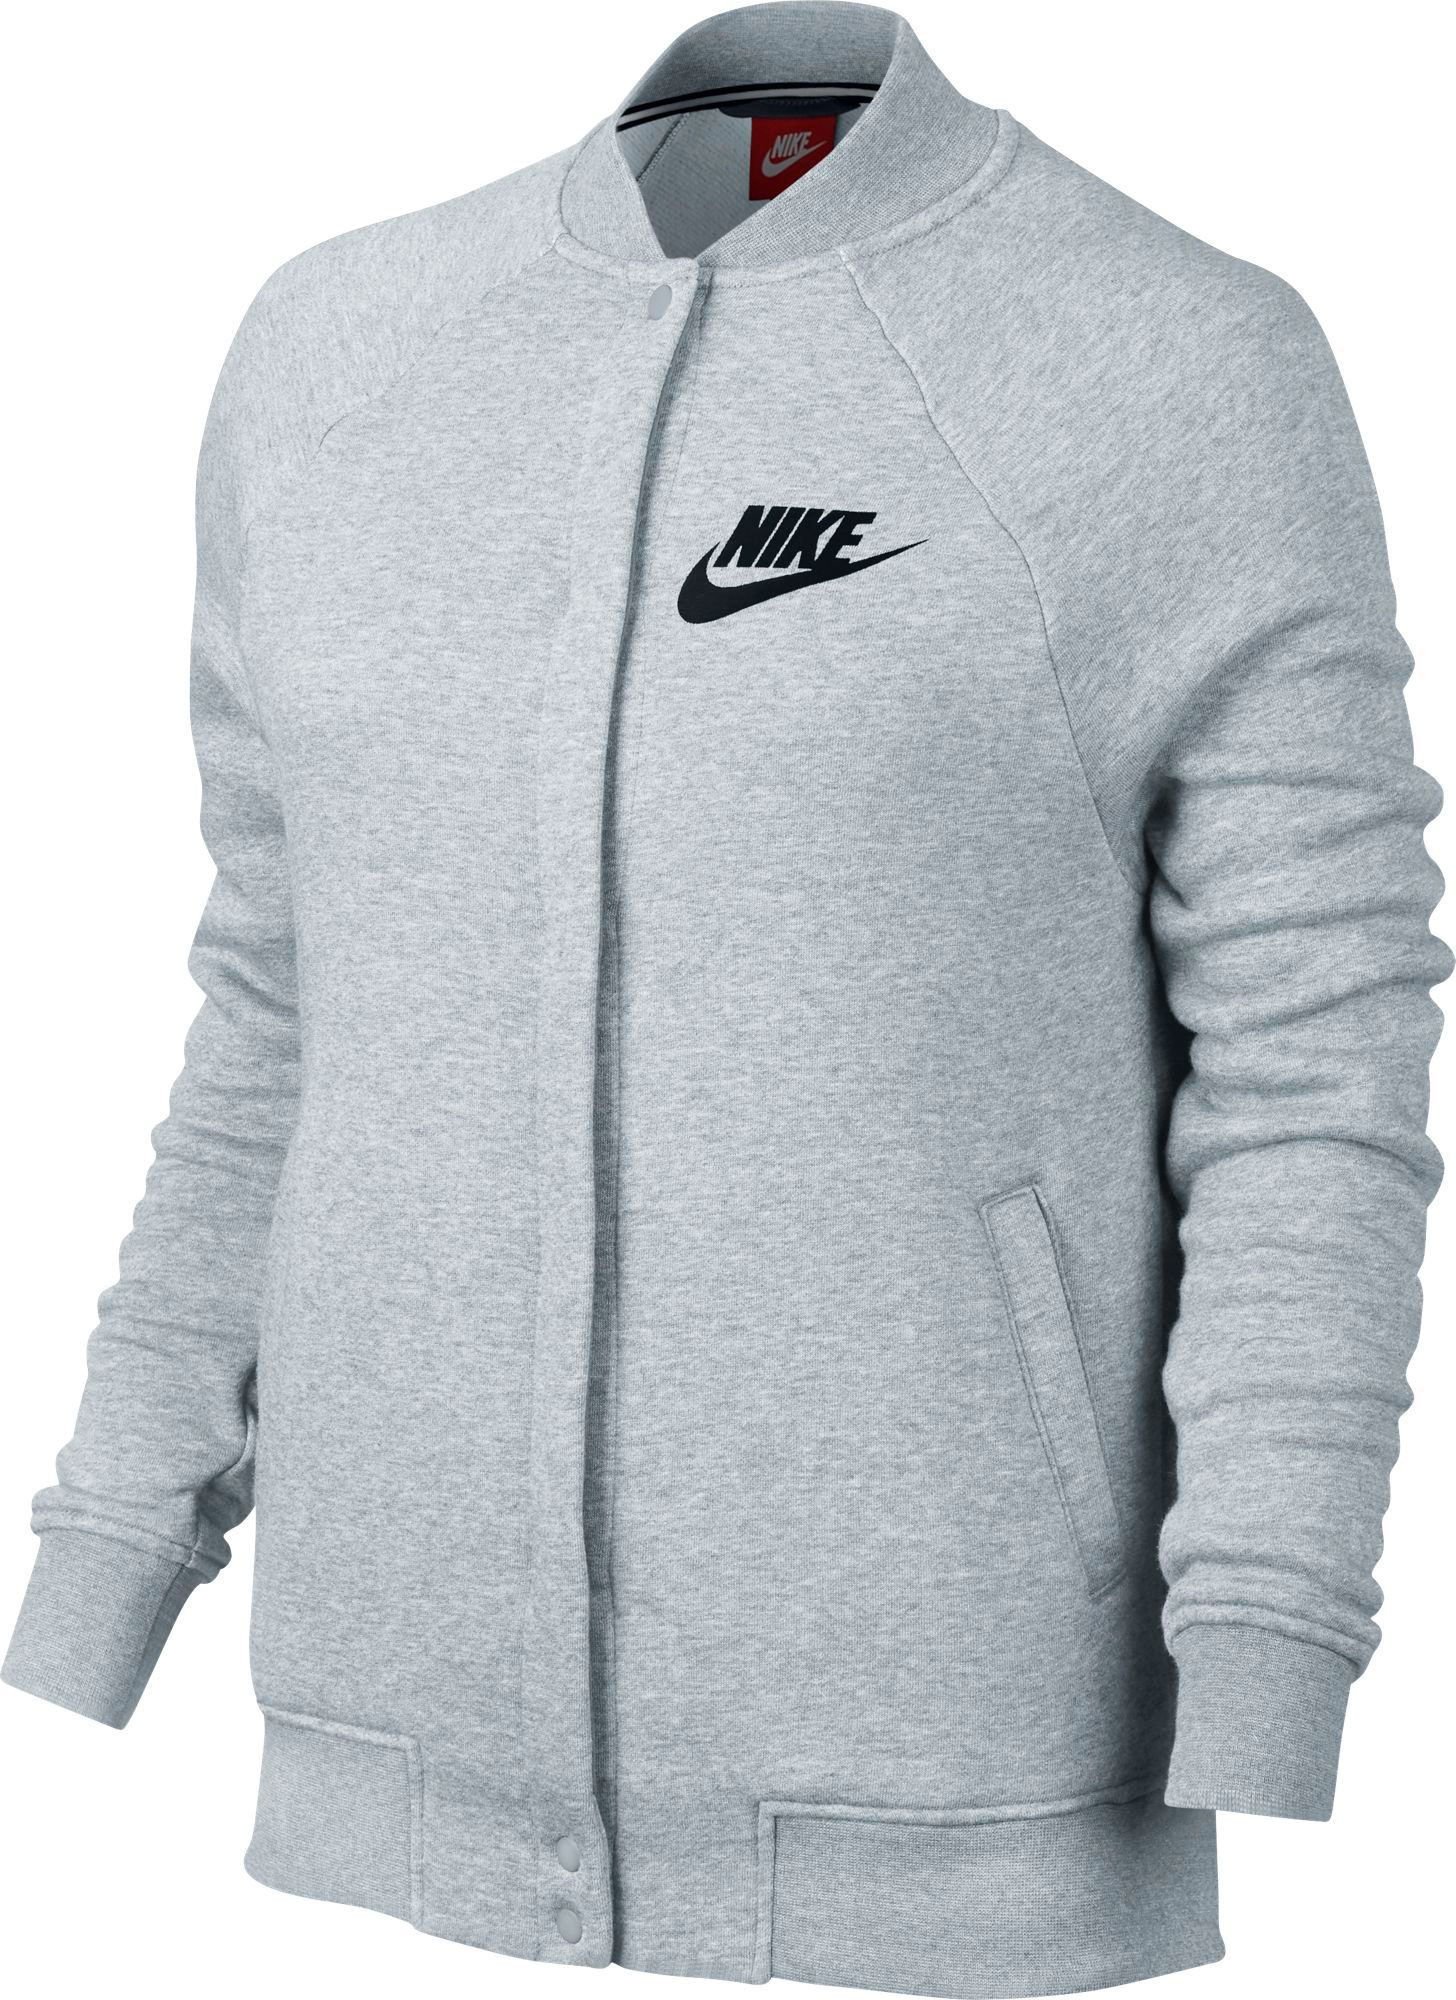 Full Zip Nike Hoodies | DICK'S Sporting Goods